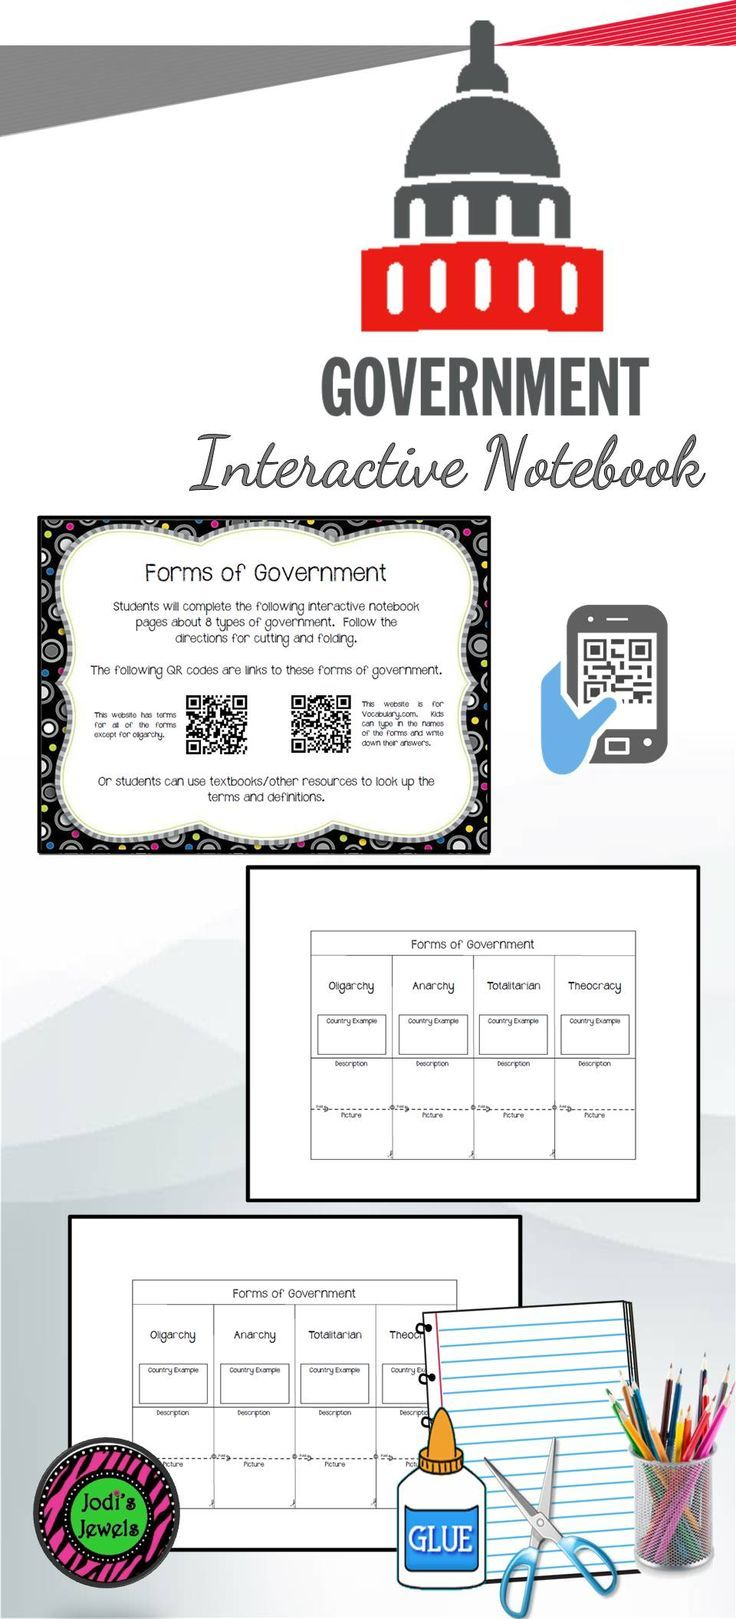 Interactive Notebook activity about the following forms of government: Democracy, Dictatorship, Monarchy, Republic, Oligarchy, Anarchy, Totalitarian, and Theocracy. Two QR codes are included for BYOT or students can use textbooks and other resources to find the terms and definitions.